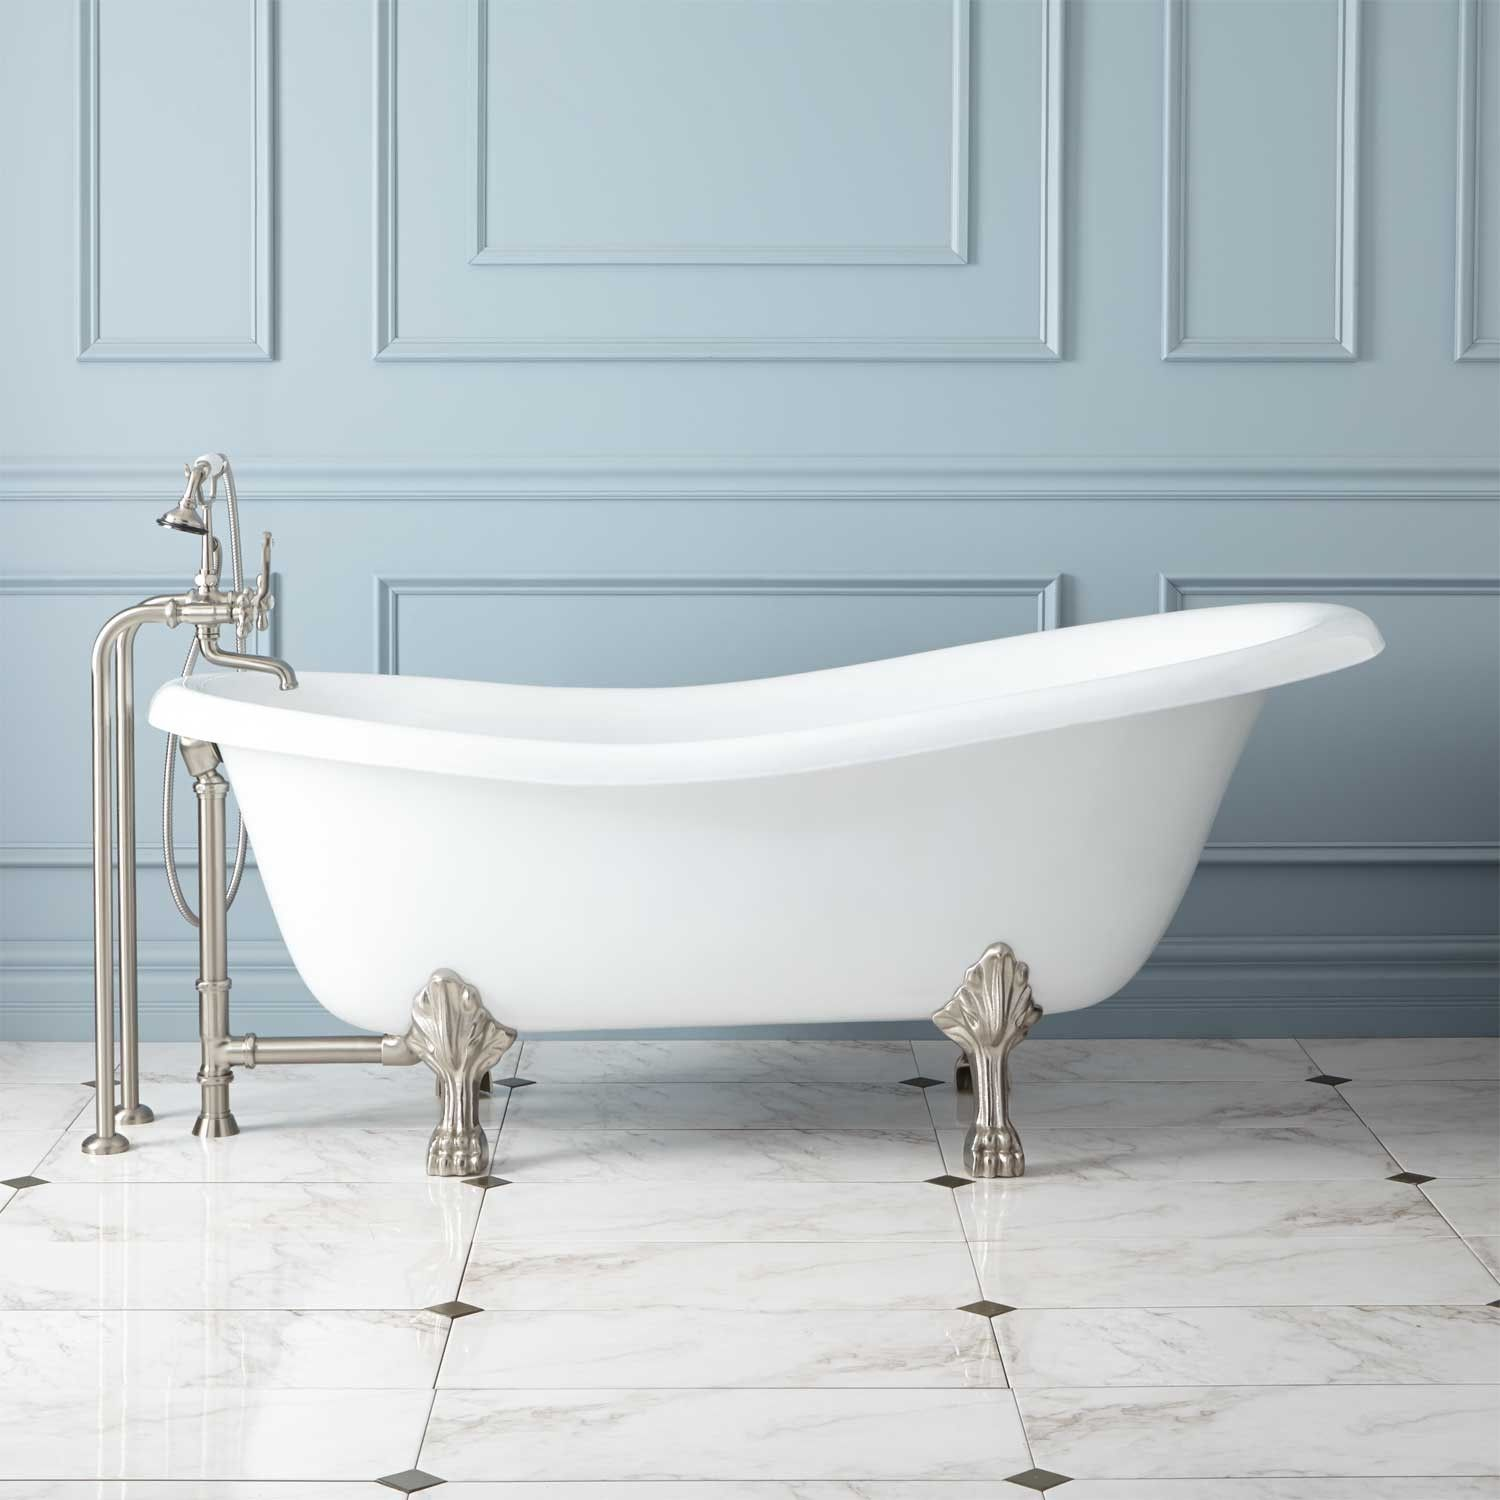 67 Quot Manhattan Cast Iron Clawfoot Tub In No Faucet Holes In